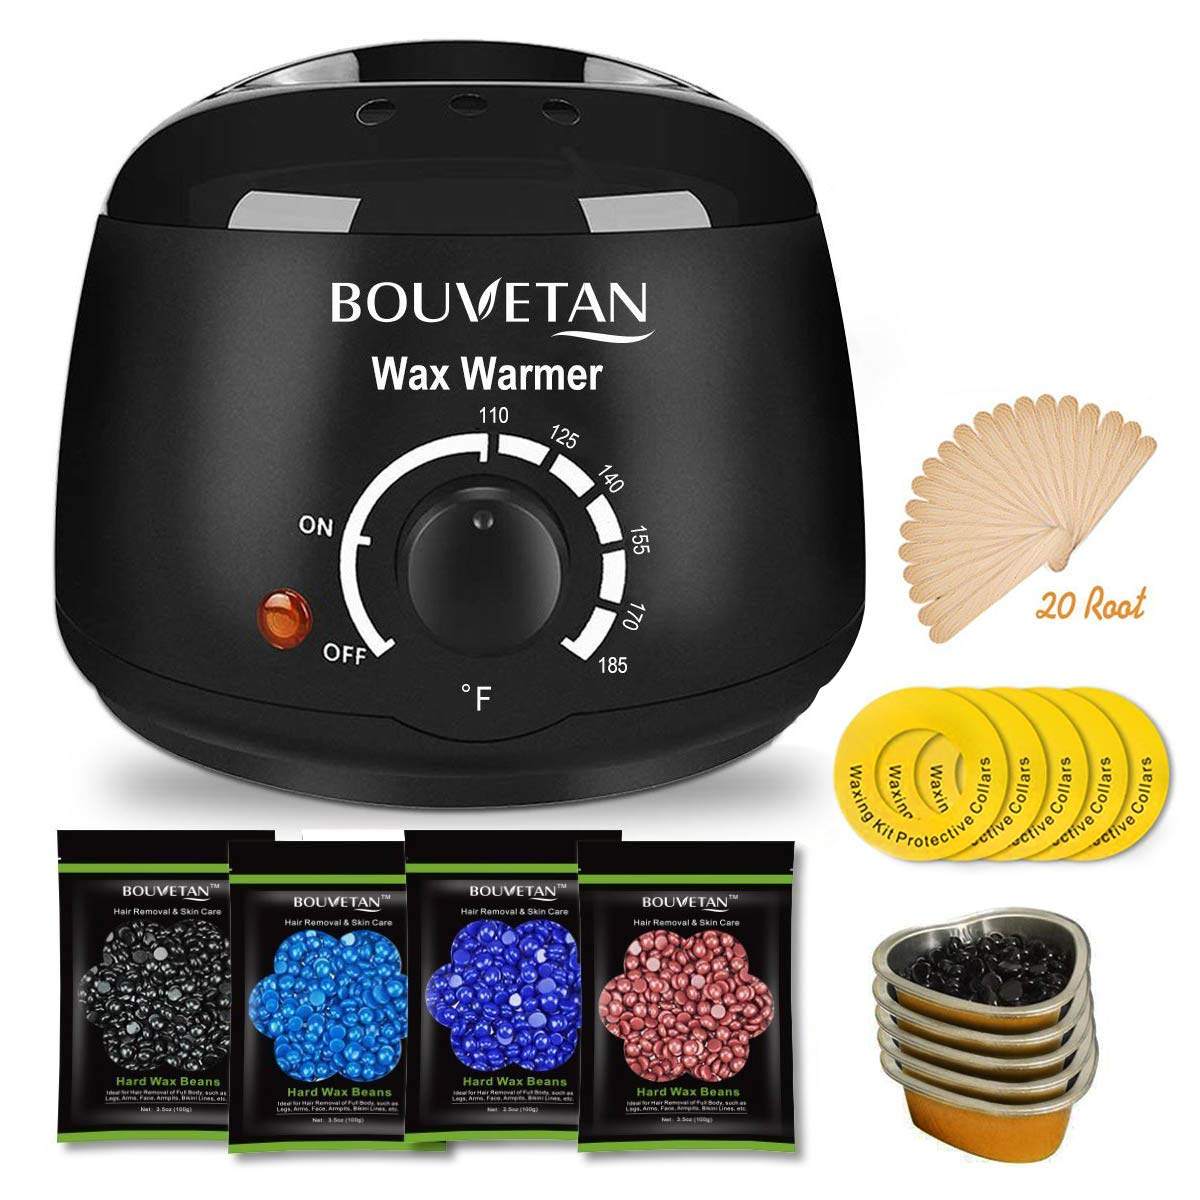 Wax Warmer, Professional Hair Removal Waxing Kit + 4 Scents Hard Wax Beans(3.5oz/Pack) + 20 Wax Applicator Sticks + 5 Protective Collars + 5 Small Bowls (Professional-grade Home Wax Kit) (15) (T01) by Keethem (Image #1)